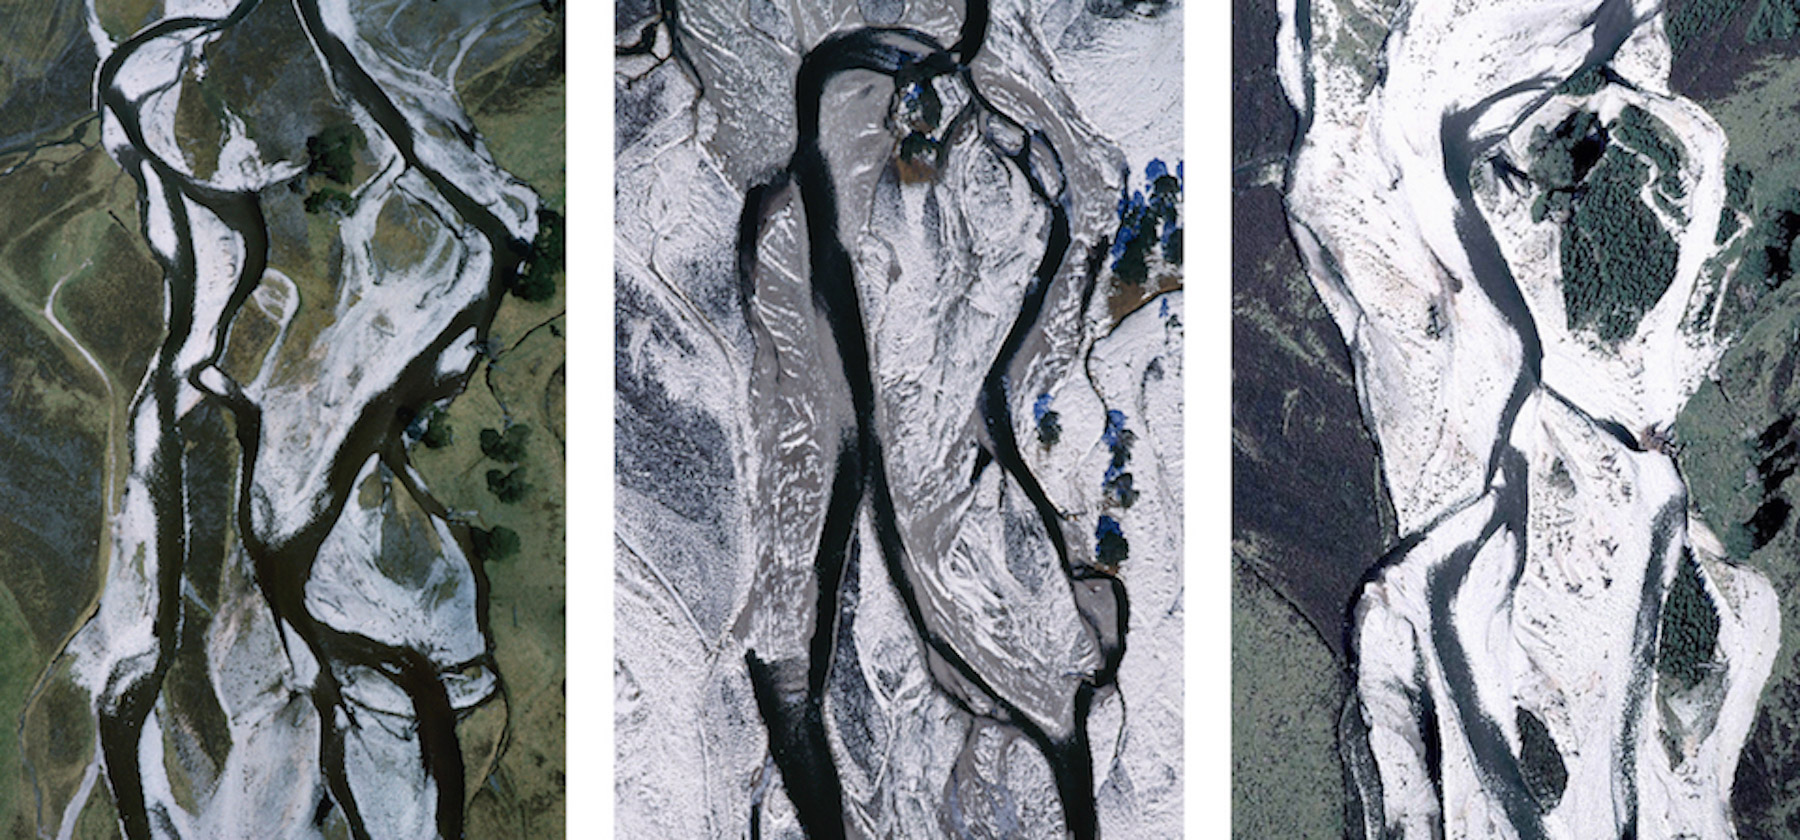 Braided river & pines, Glen Feshie, Cairngorms, Scotland (time-lapse triptych), 1988-2016 // © Patricia Macdonald & Angus Macdonald